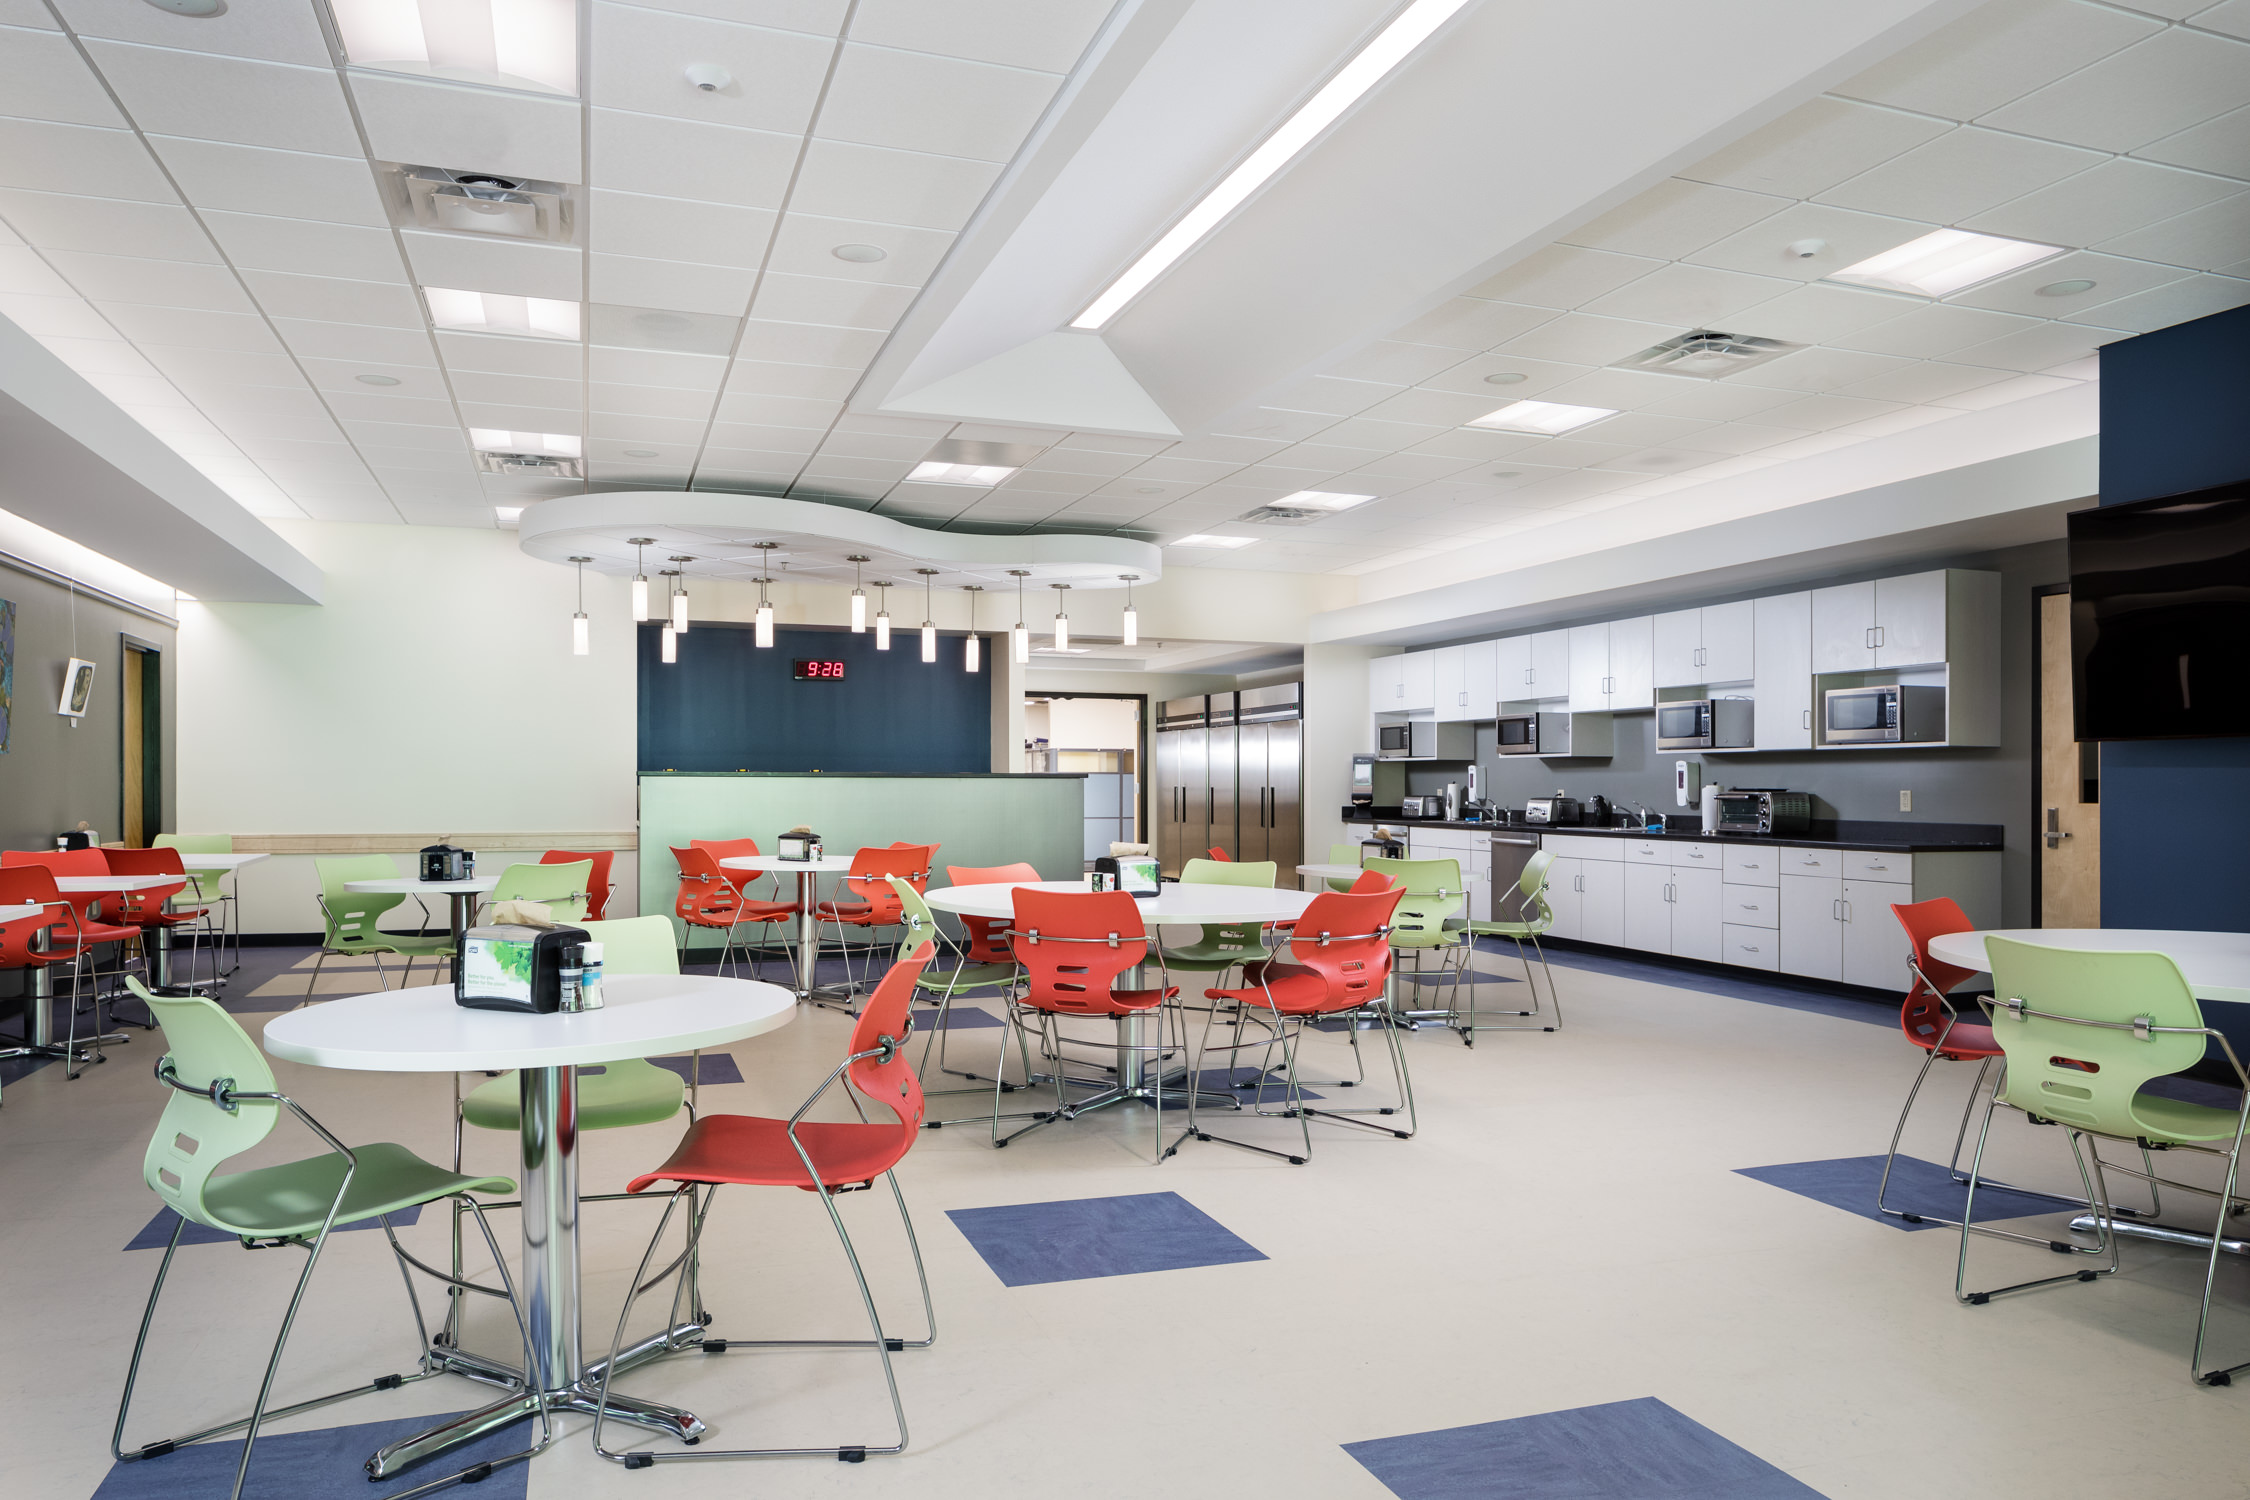 Photo by Stina Booth of the new modern cafeteria in the Biotek facility in Winooski Vermont constructed by Neagley & Chase Construction.